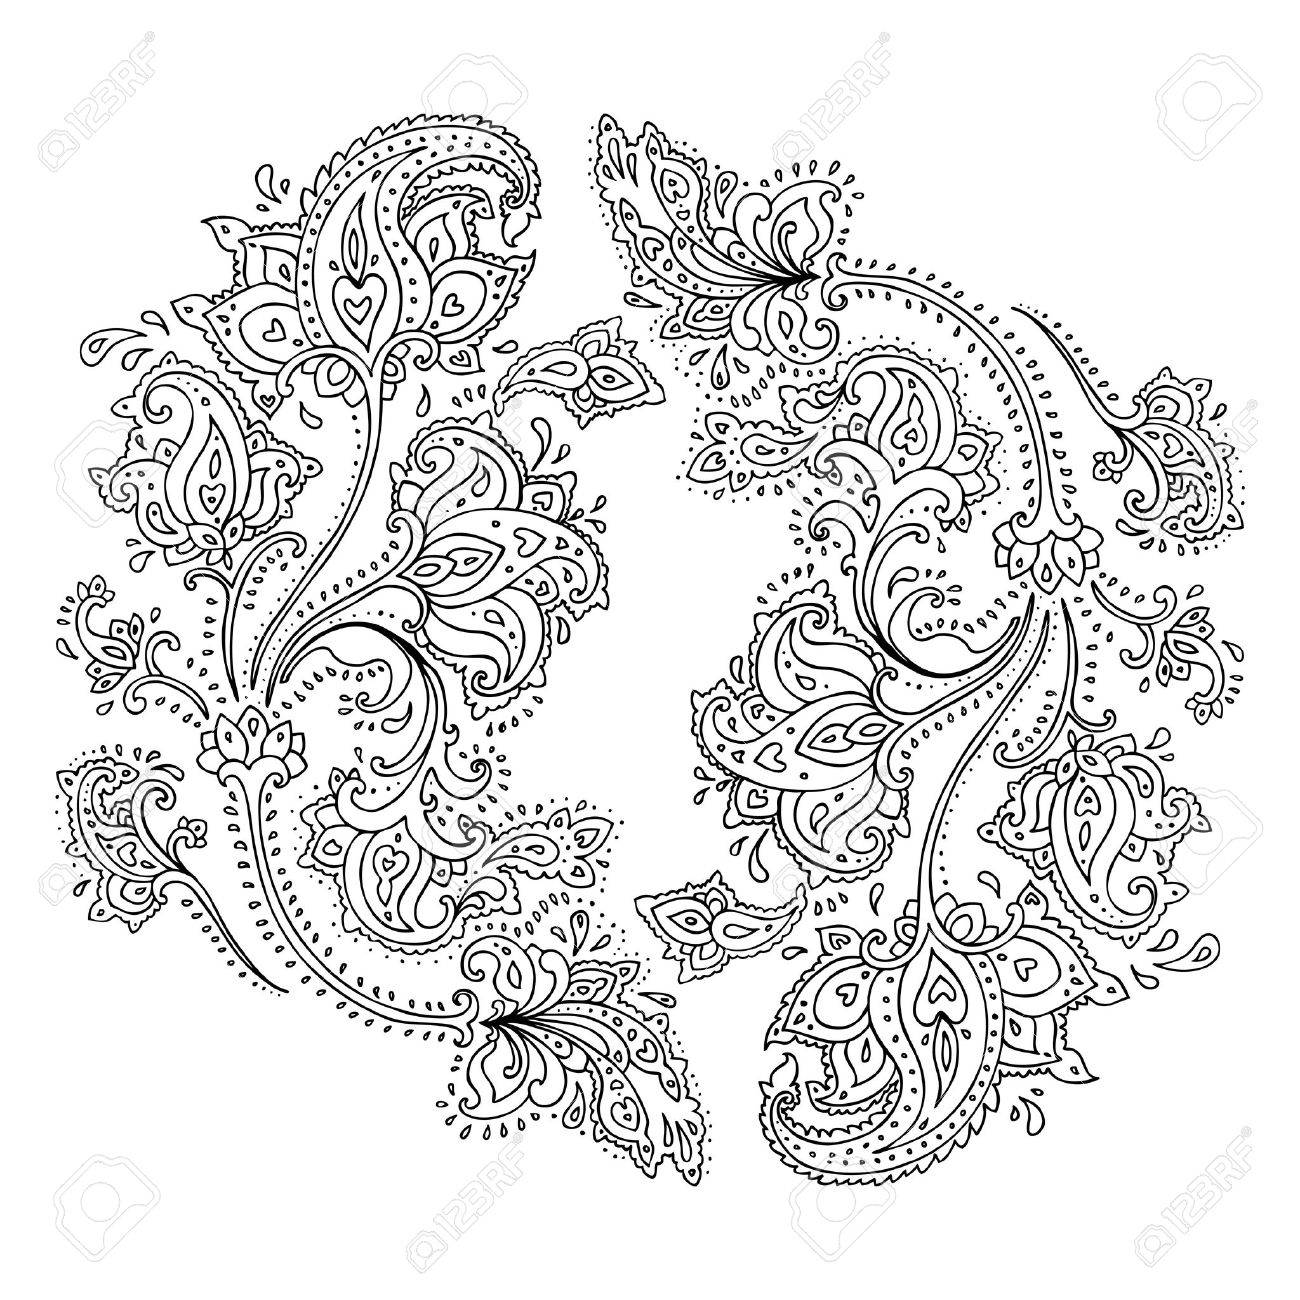 Paisley  Ethnic ornament   Vector illustration isolated Stock Vector - 18516062